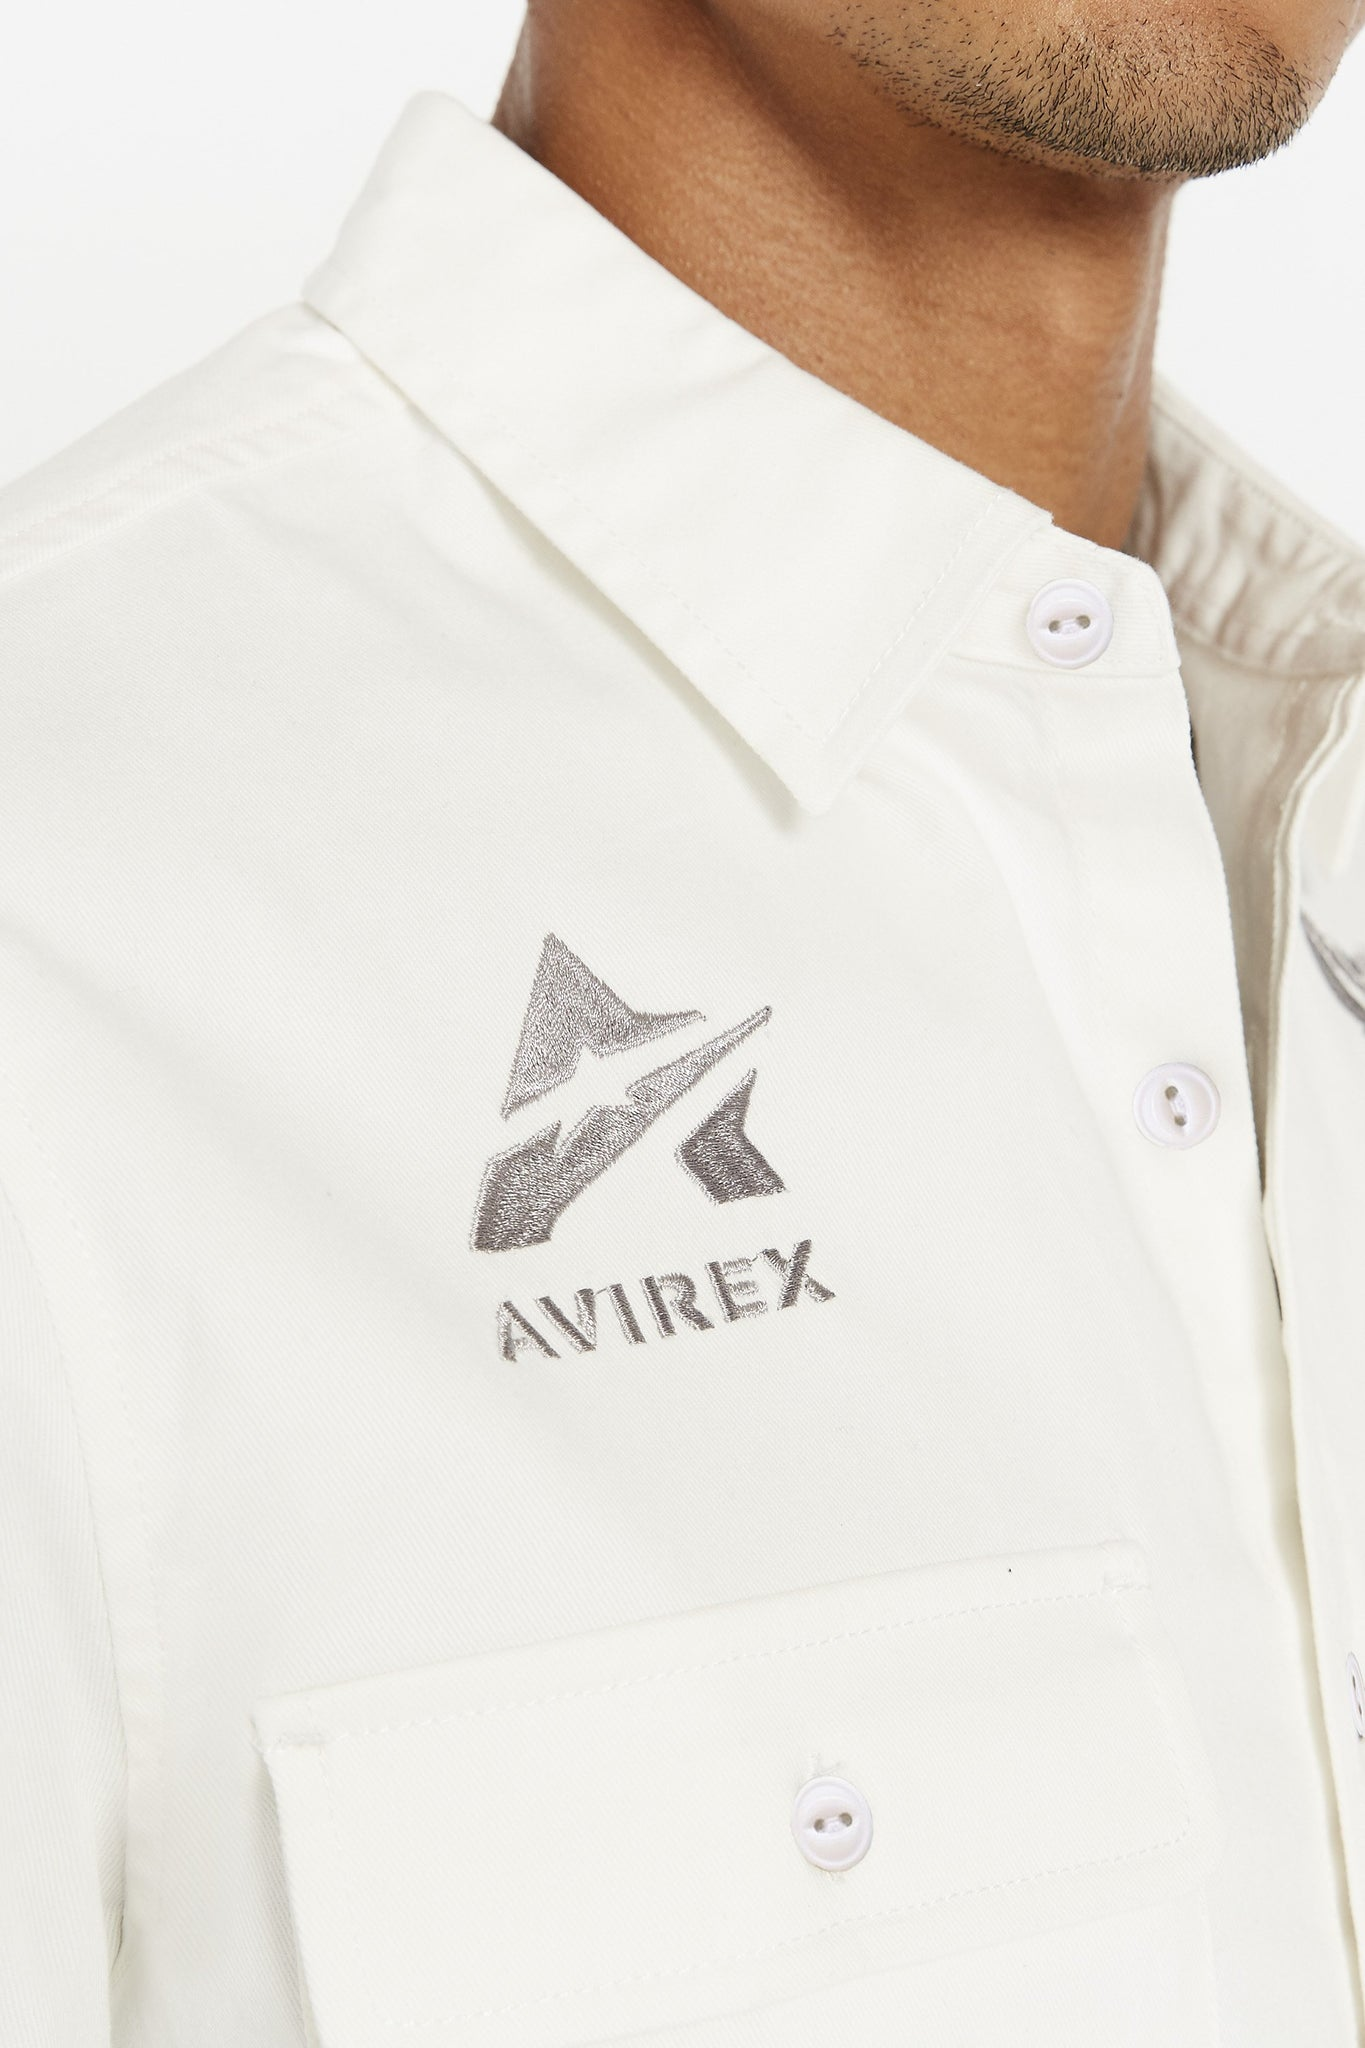 Detailed view of embroidery logo above pocket on right chest